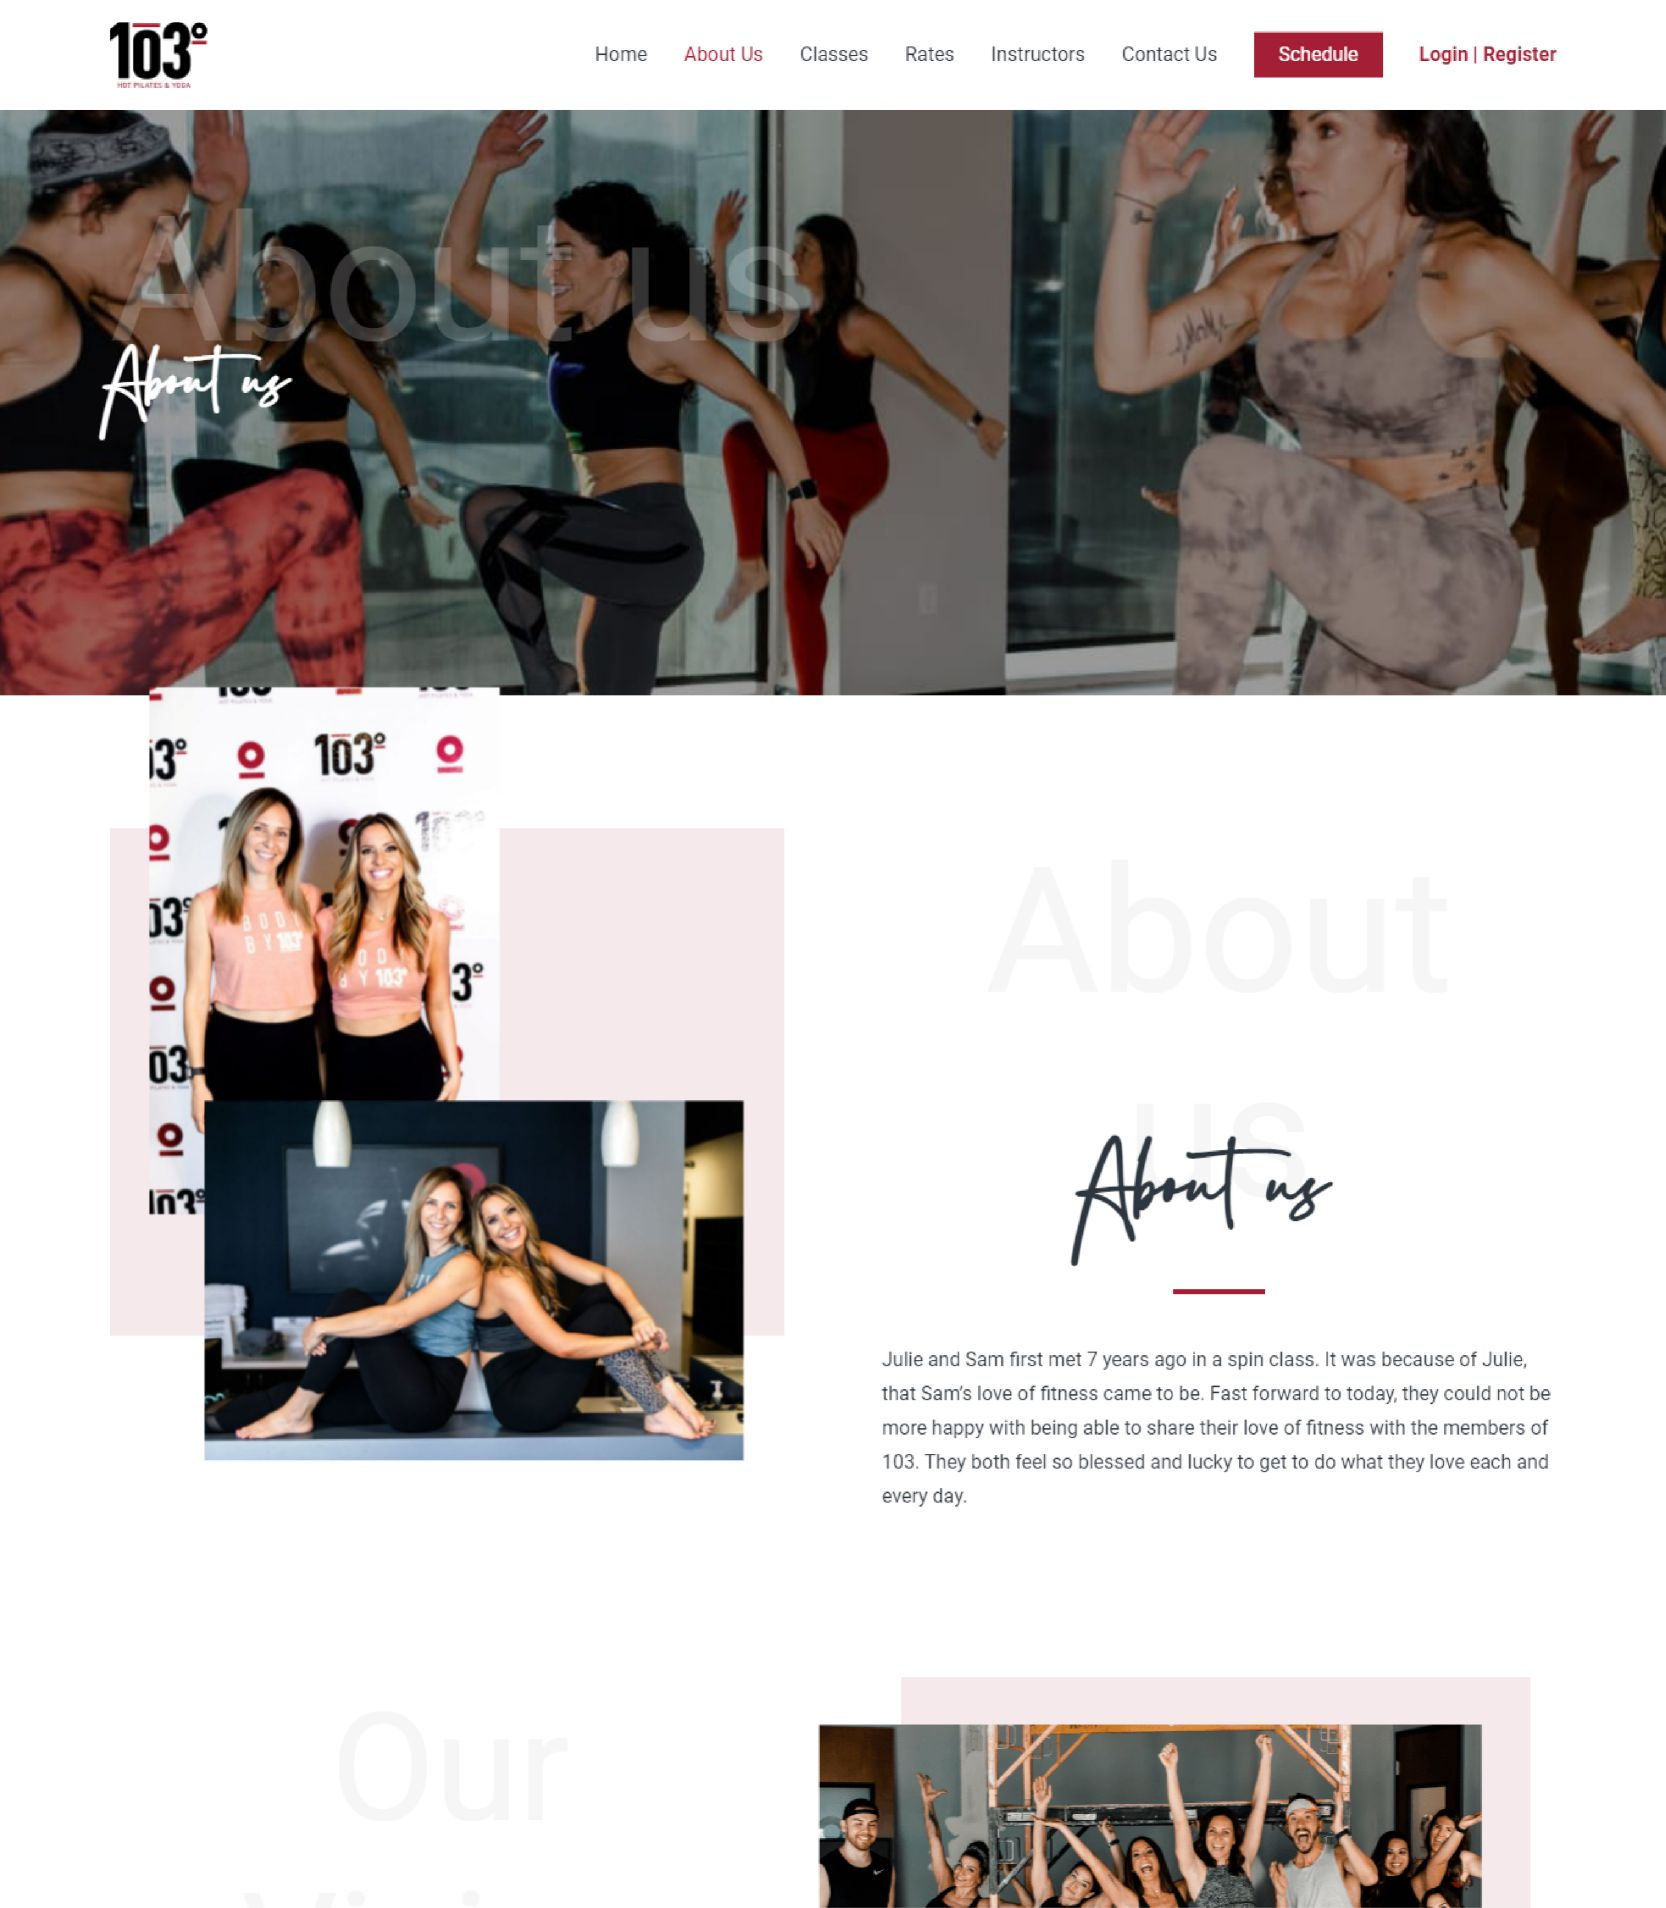 103 Yoga About Us Landing Page Design